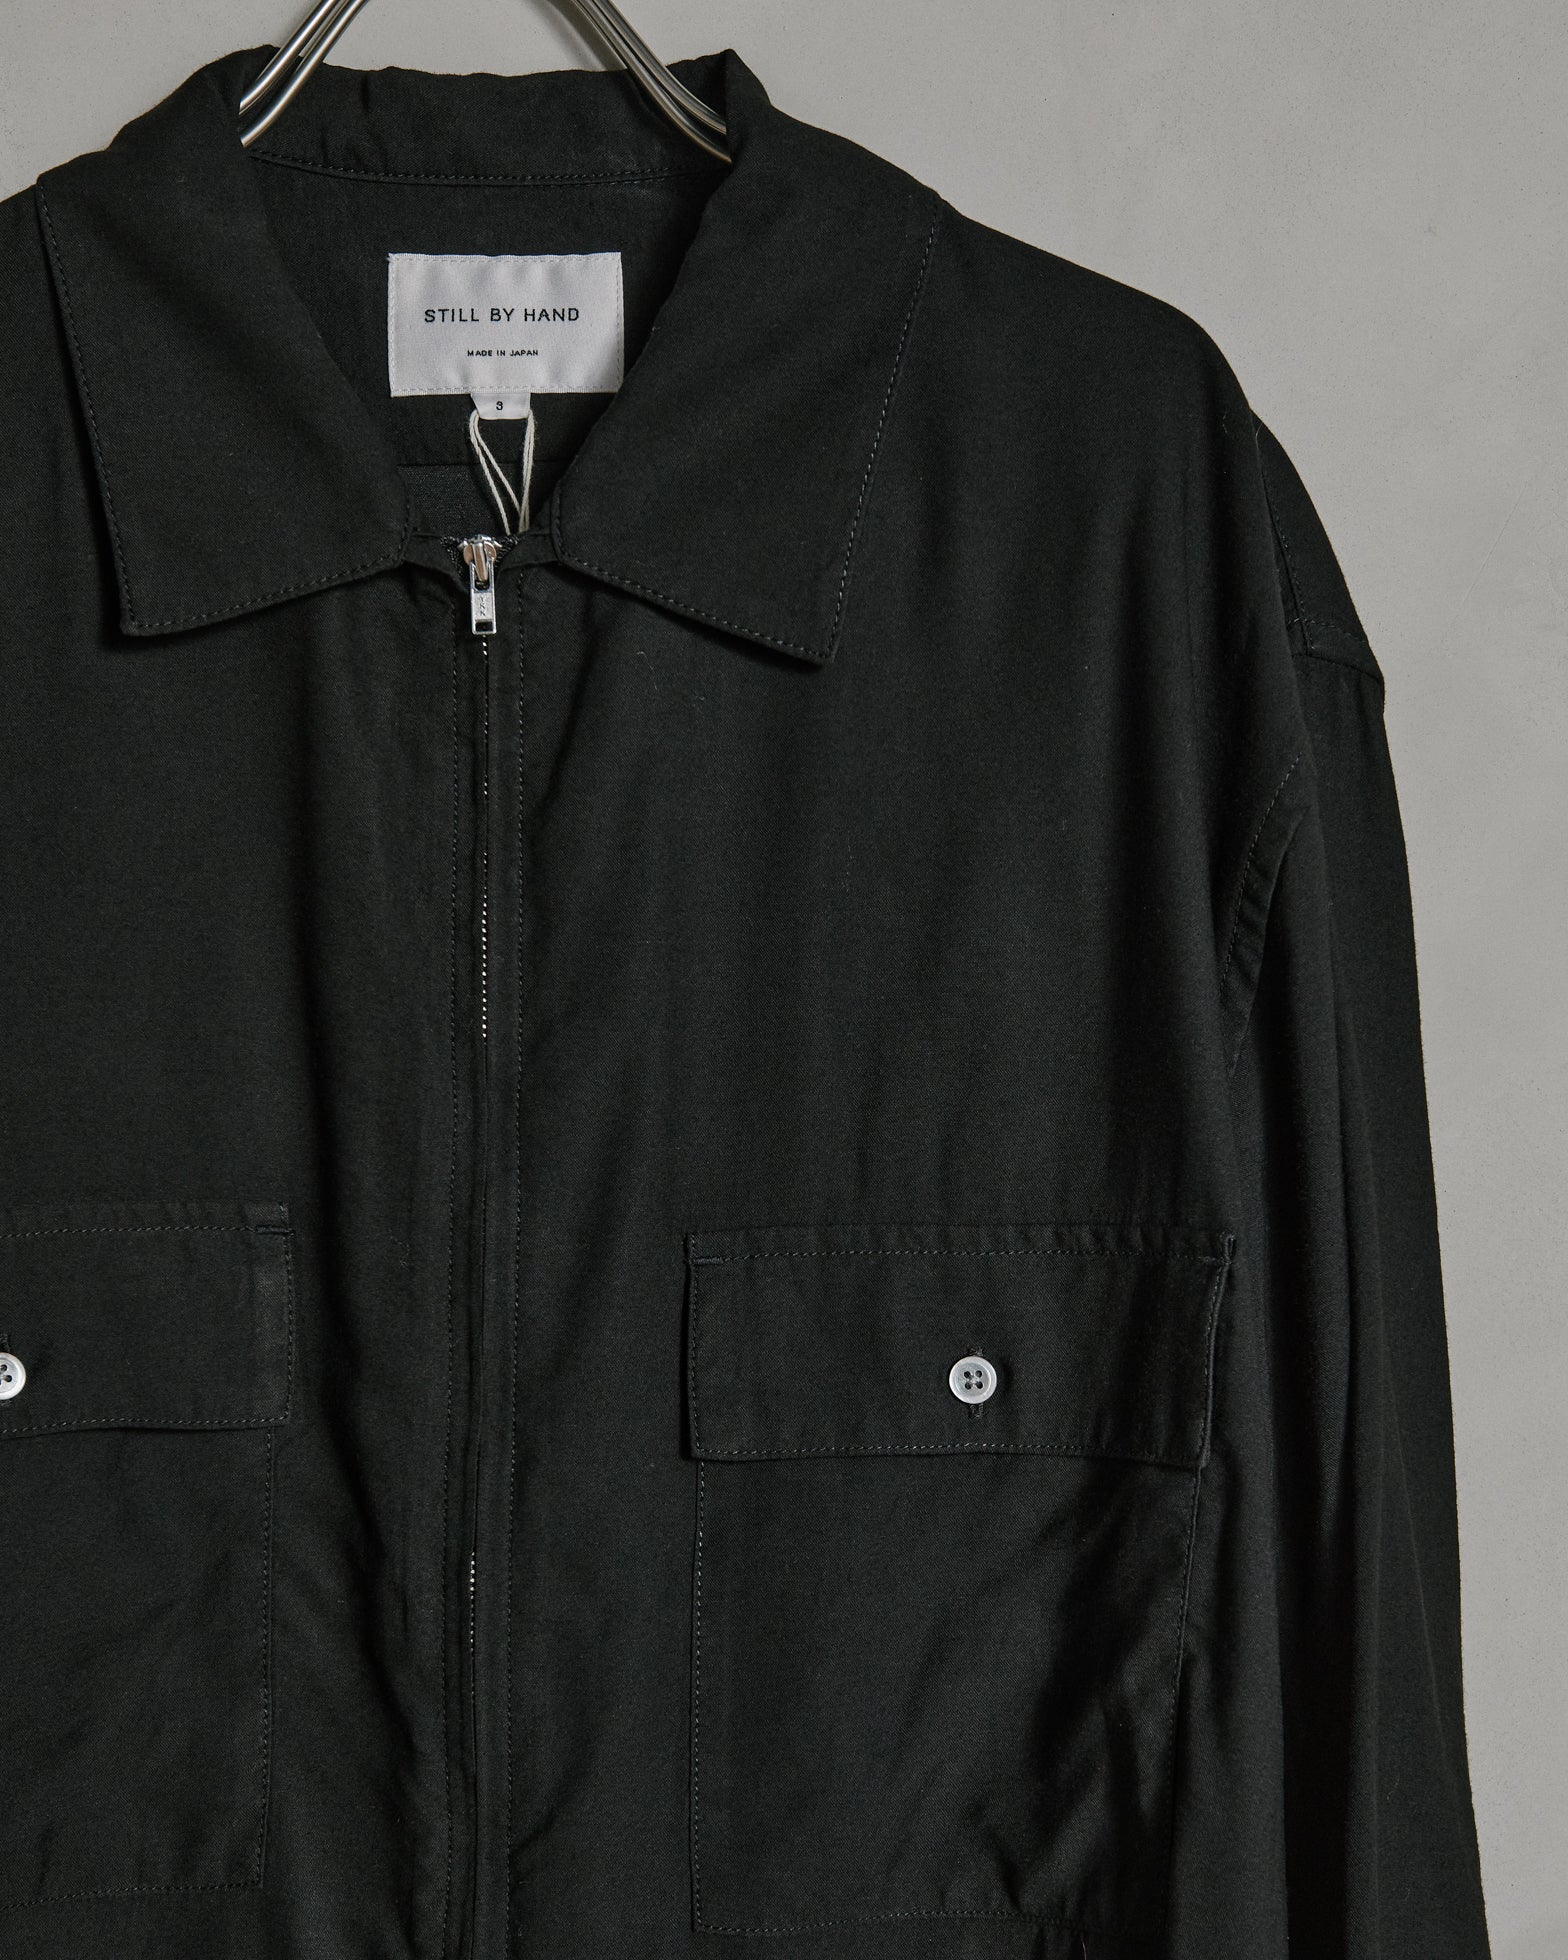 W Pocket Zip-up Shirt in Black